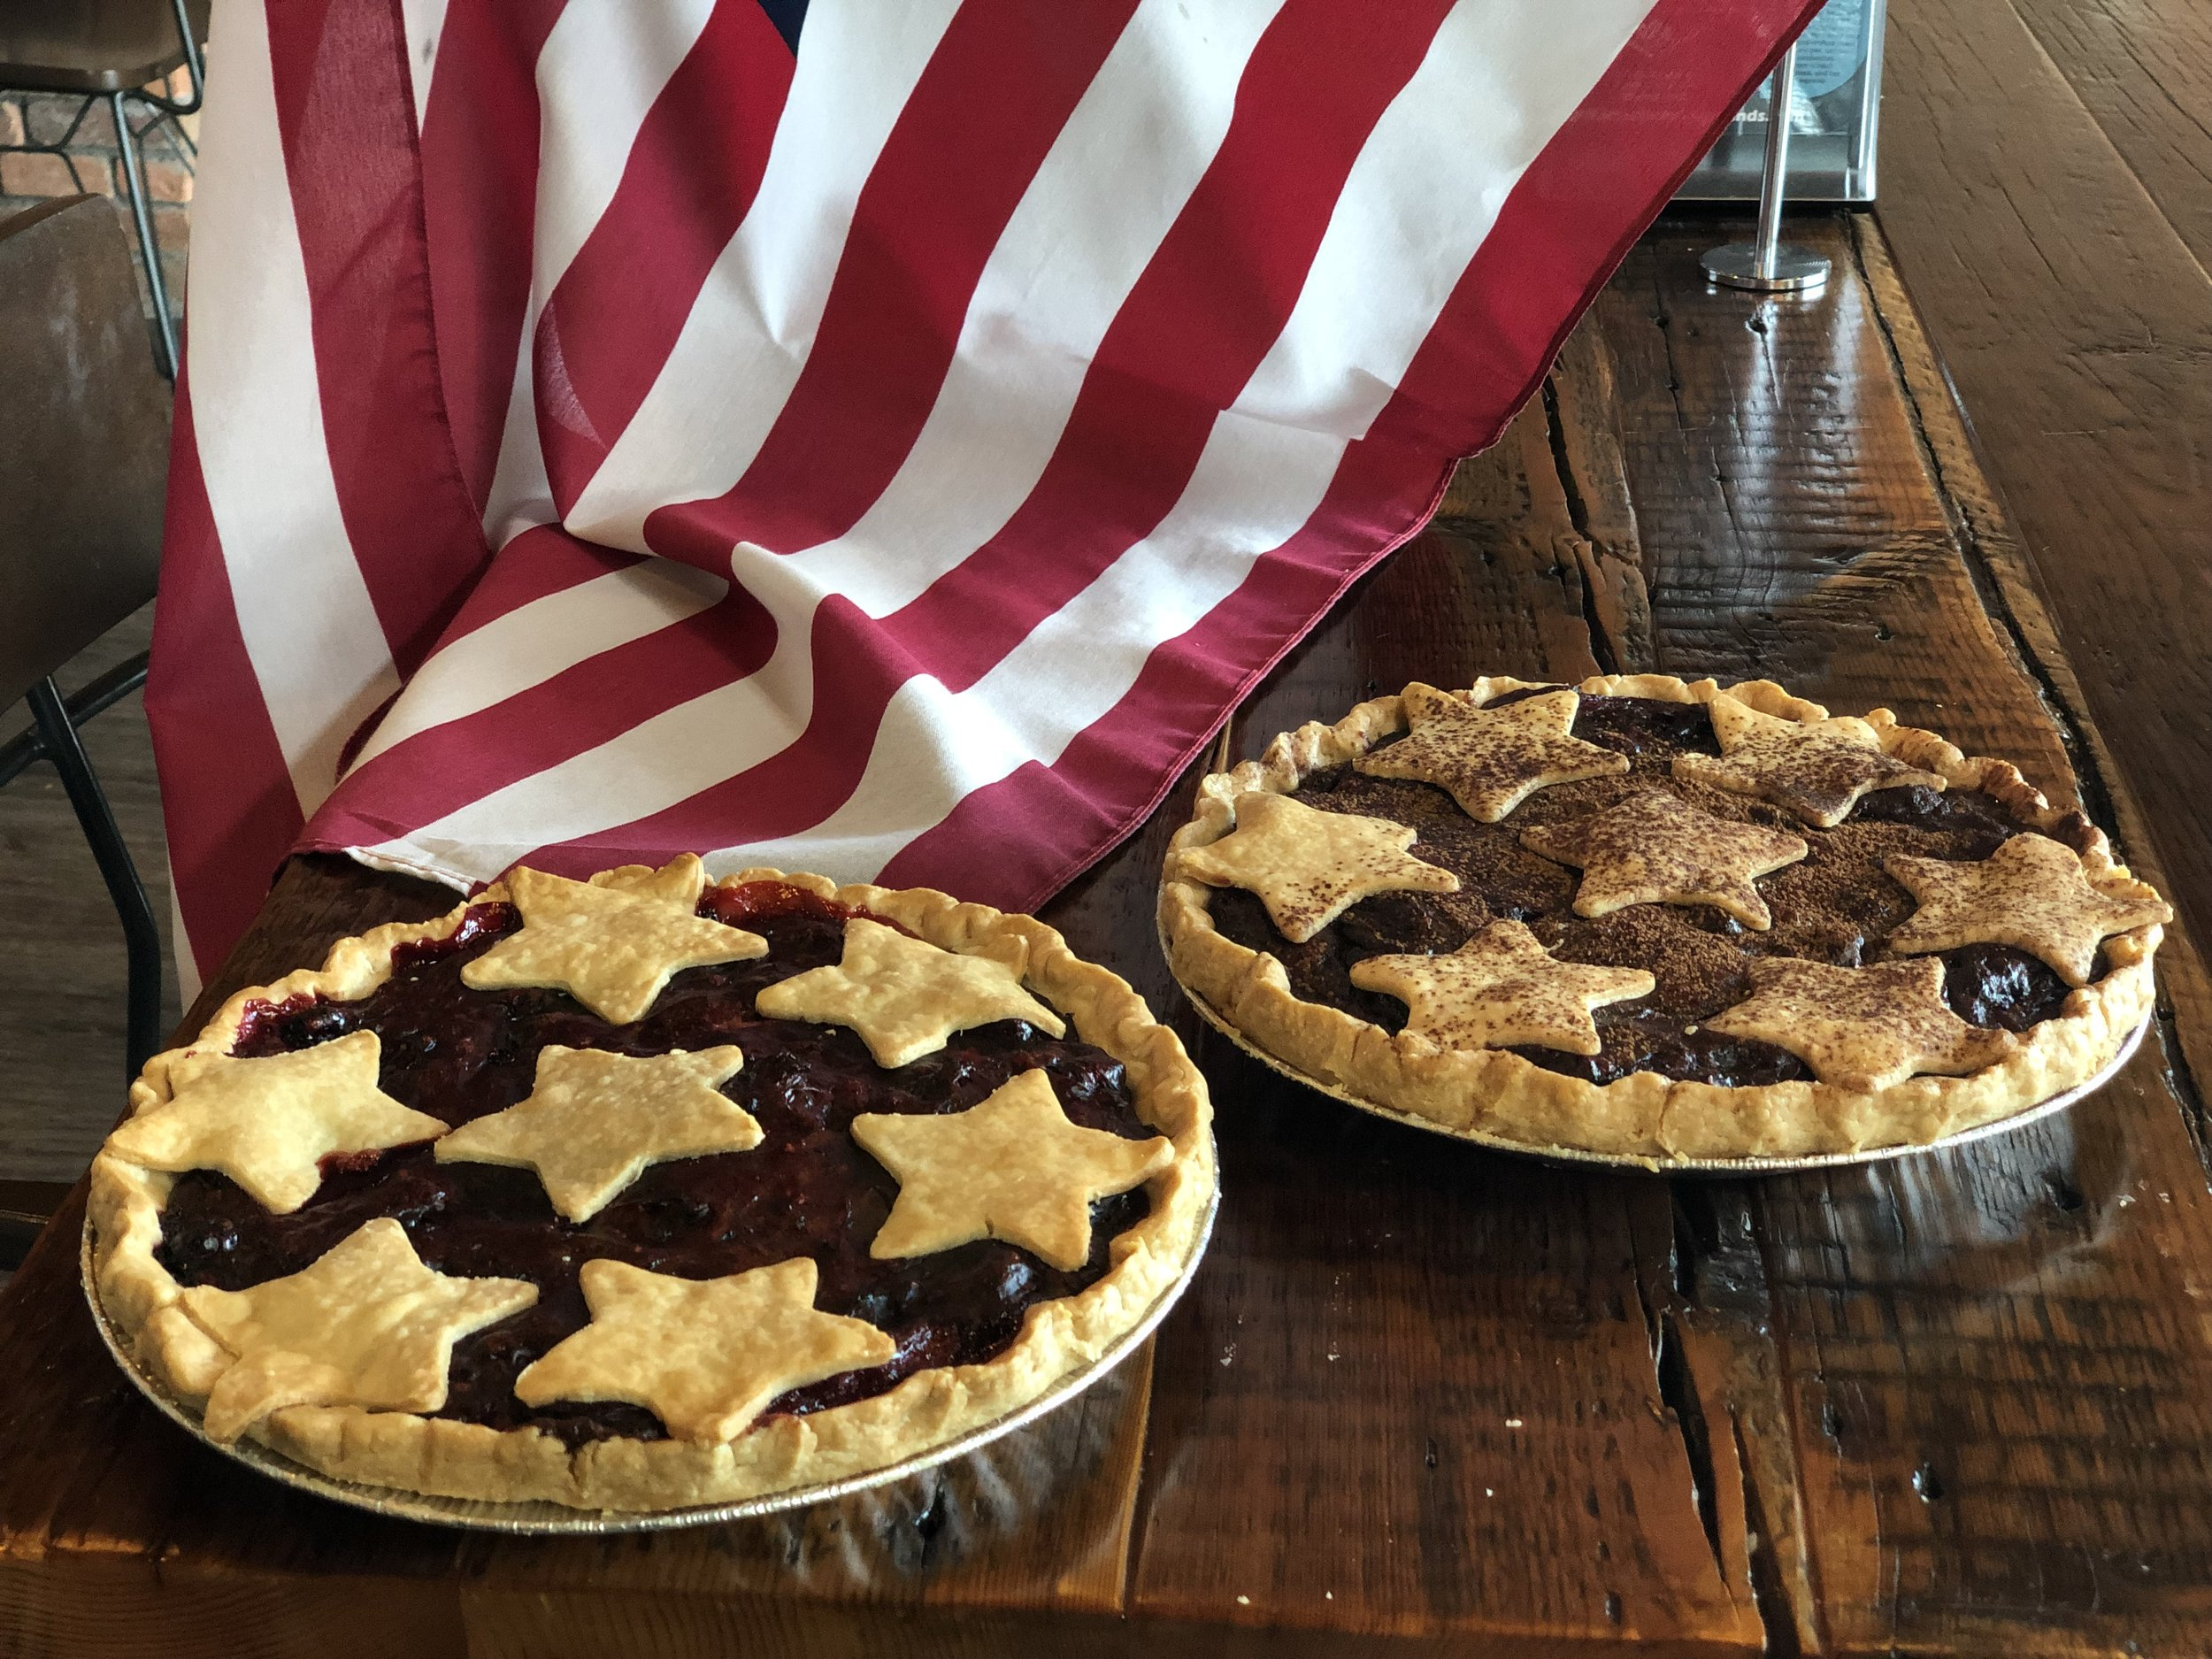 Stars and Stripes Blueberry Pie - We LOVE making every holiday special at the shop!Order your baked goods today and make your holidays special too!